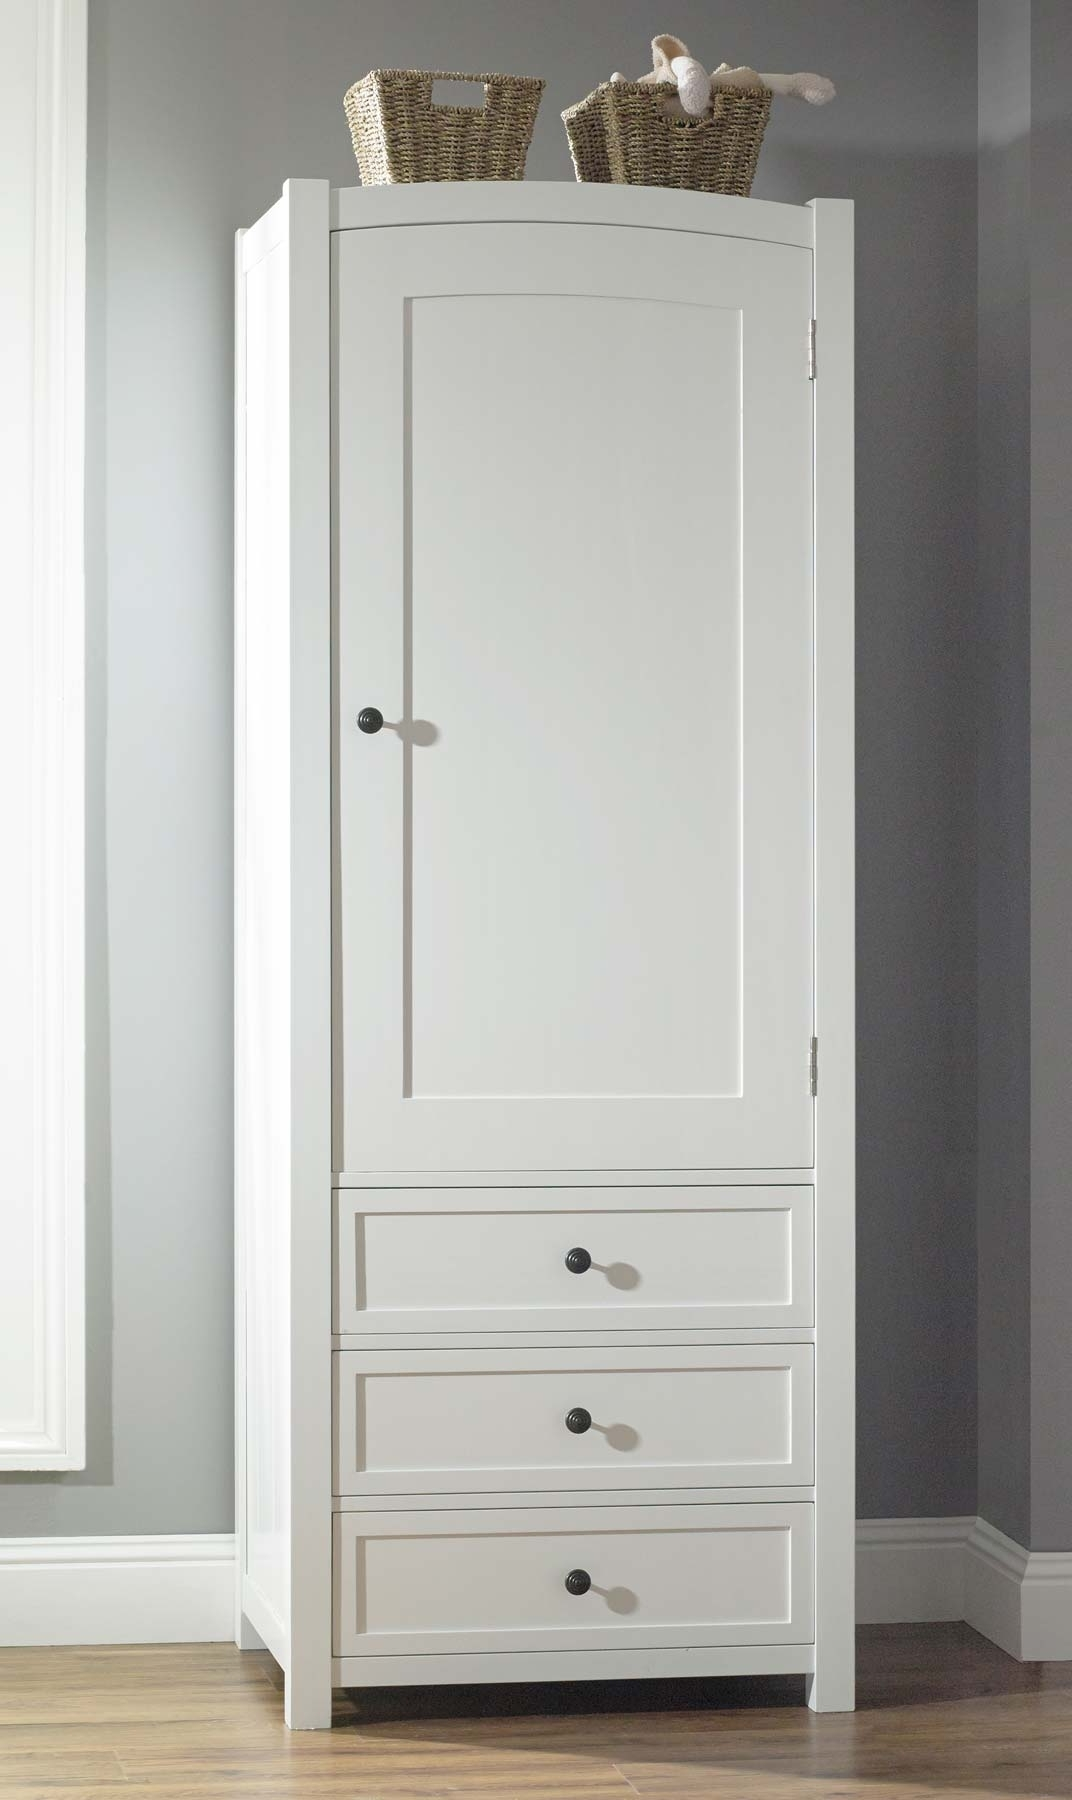 Single Wardrobes With Drawers And Shelves Intended For Preferred Single Wardrobe With Drawers And Mirror Oak White Shelves This Is (View 9 of 15)